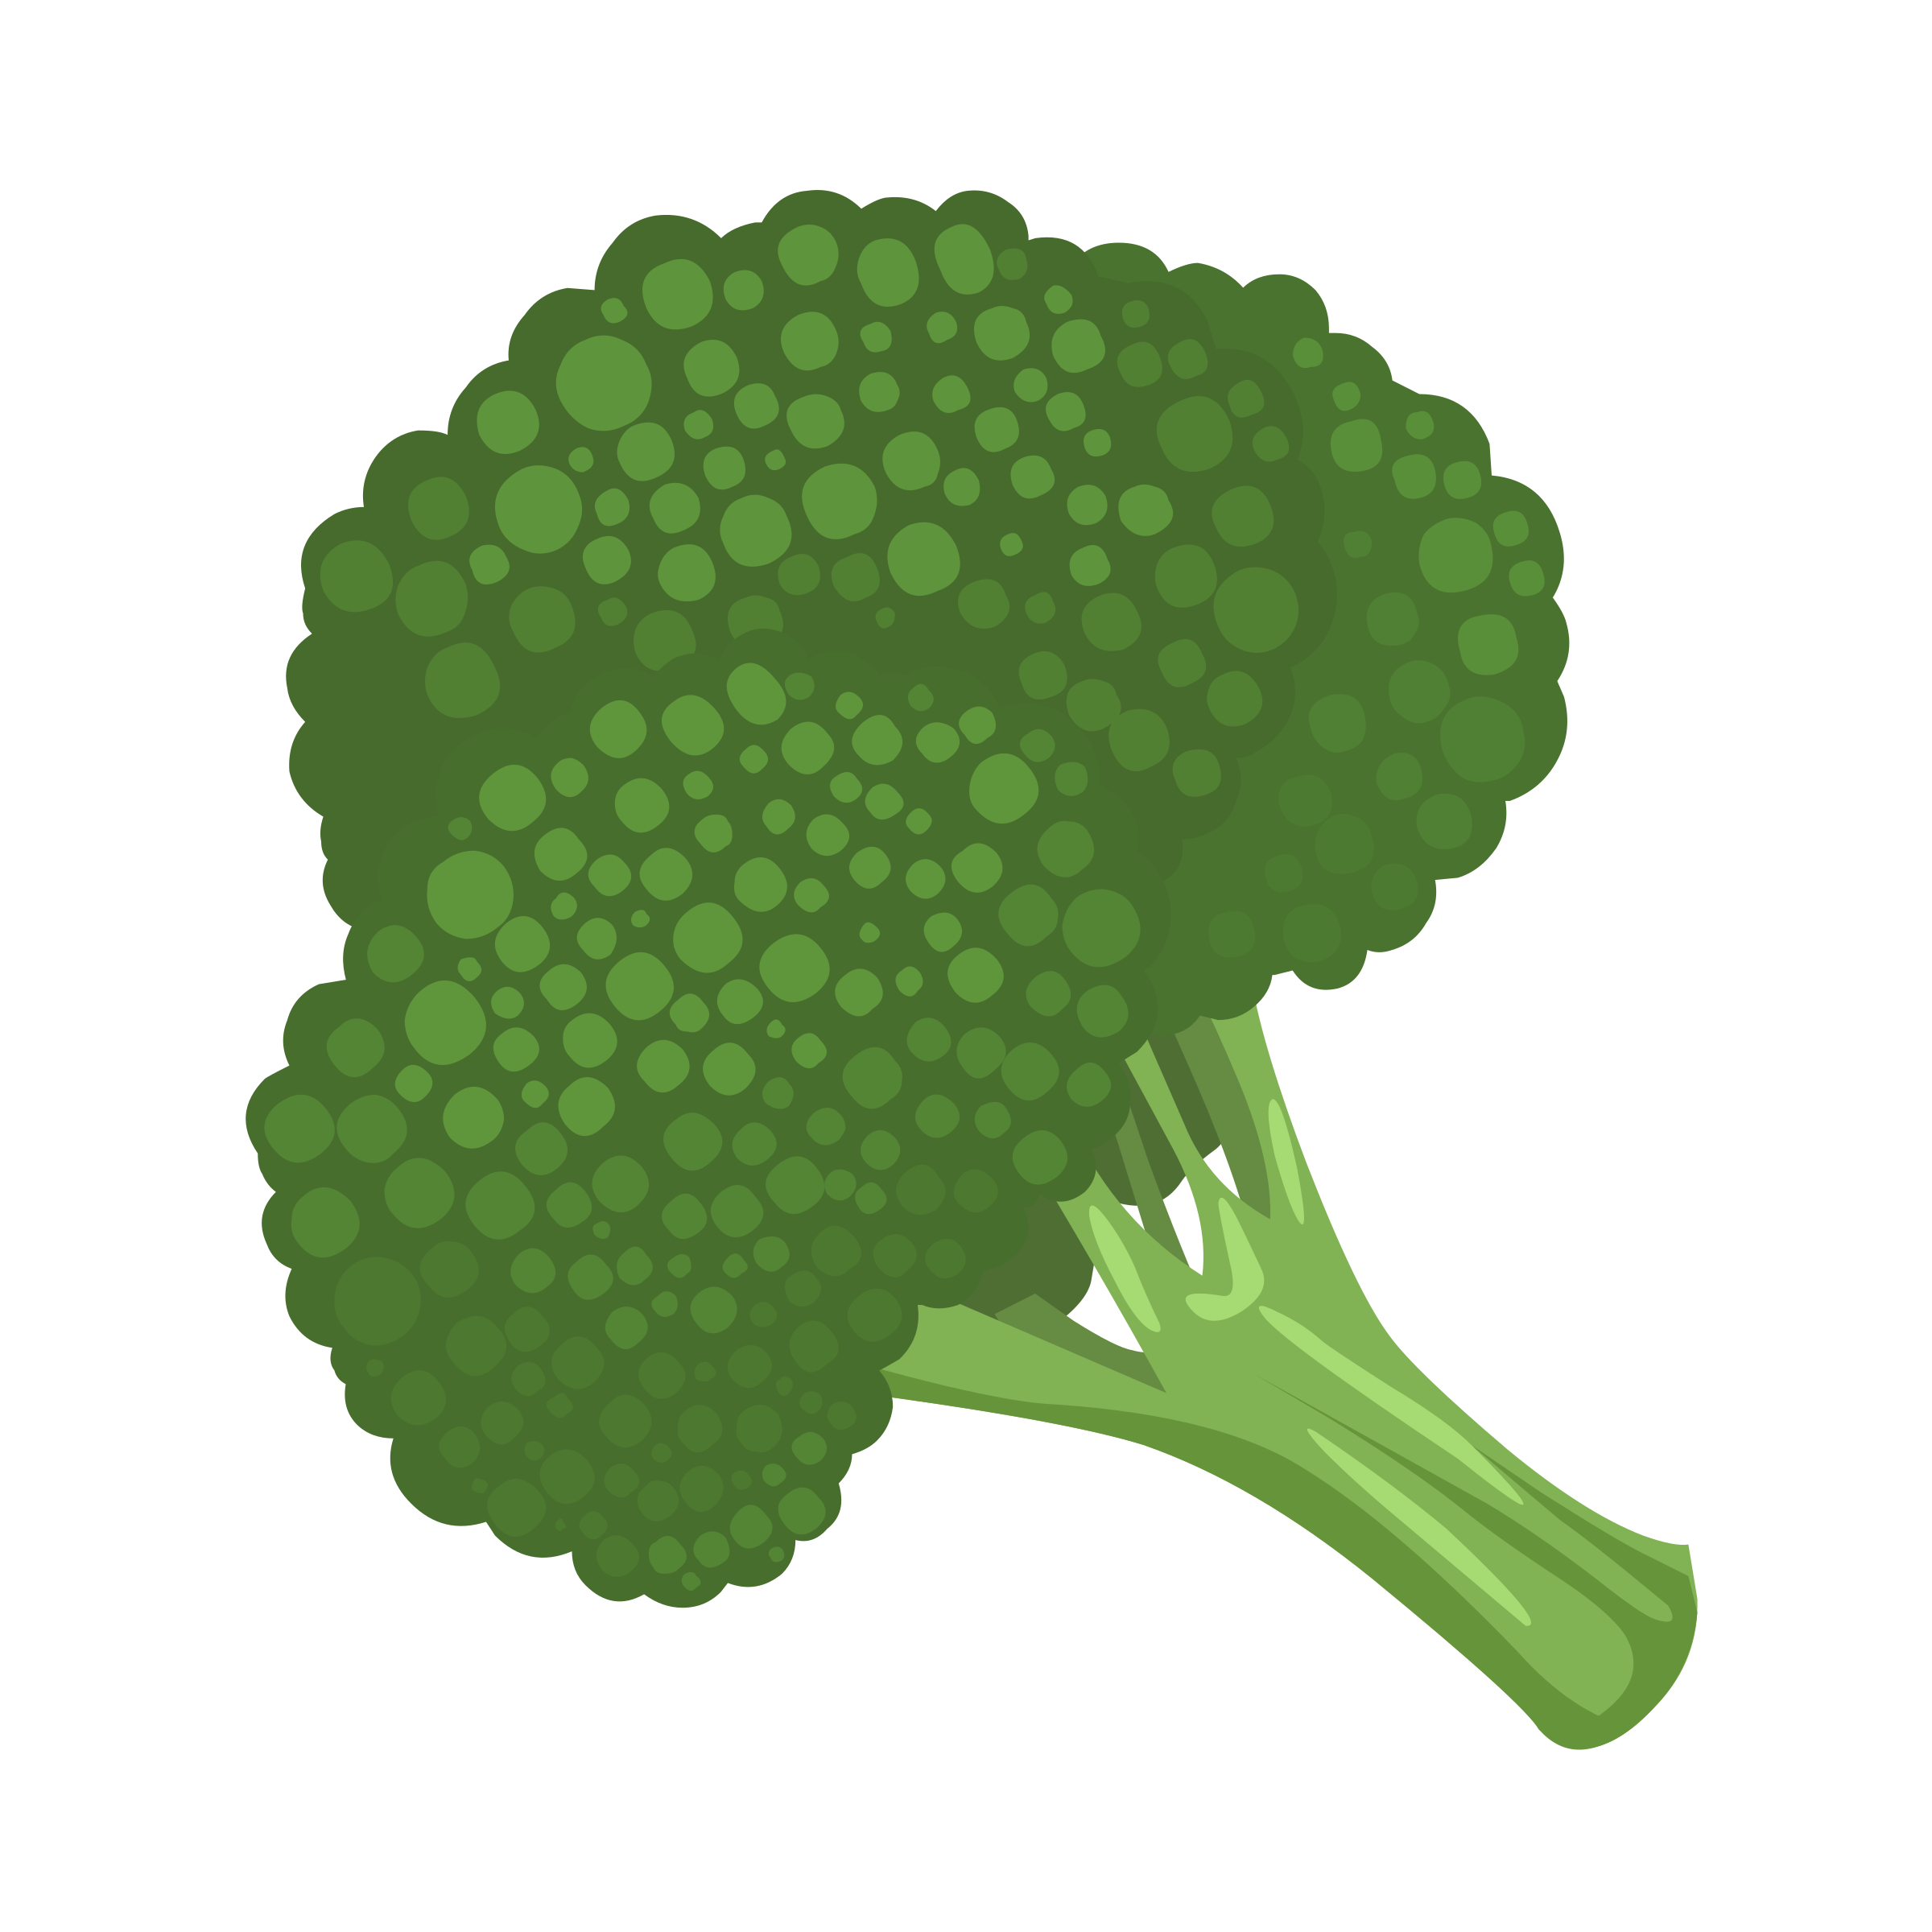 Broccoli clipart useful food. Icons png free and